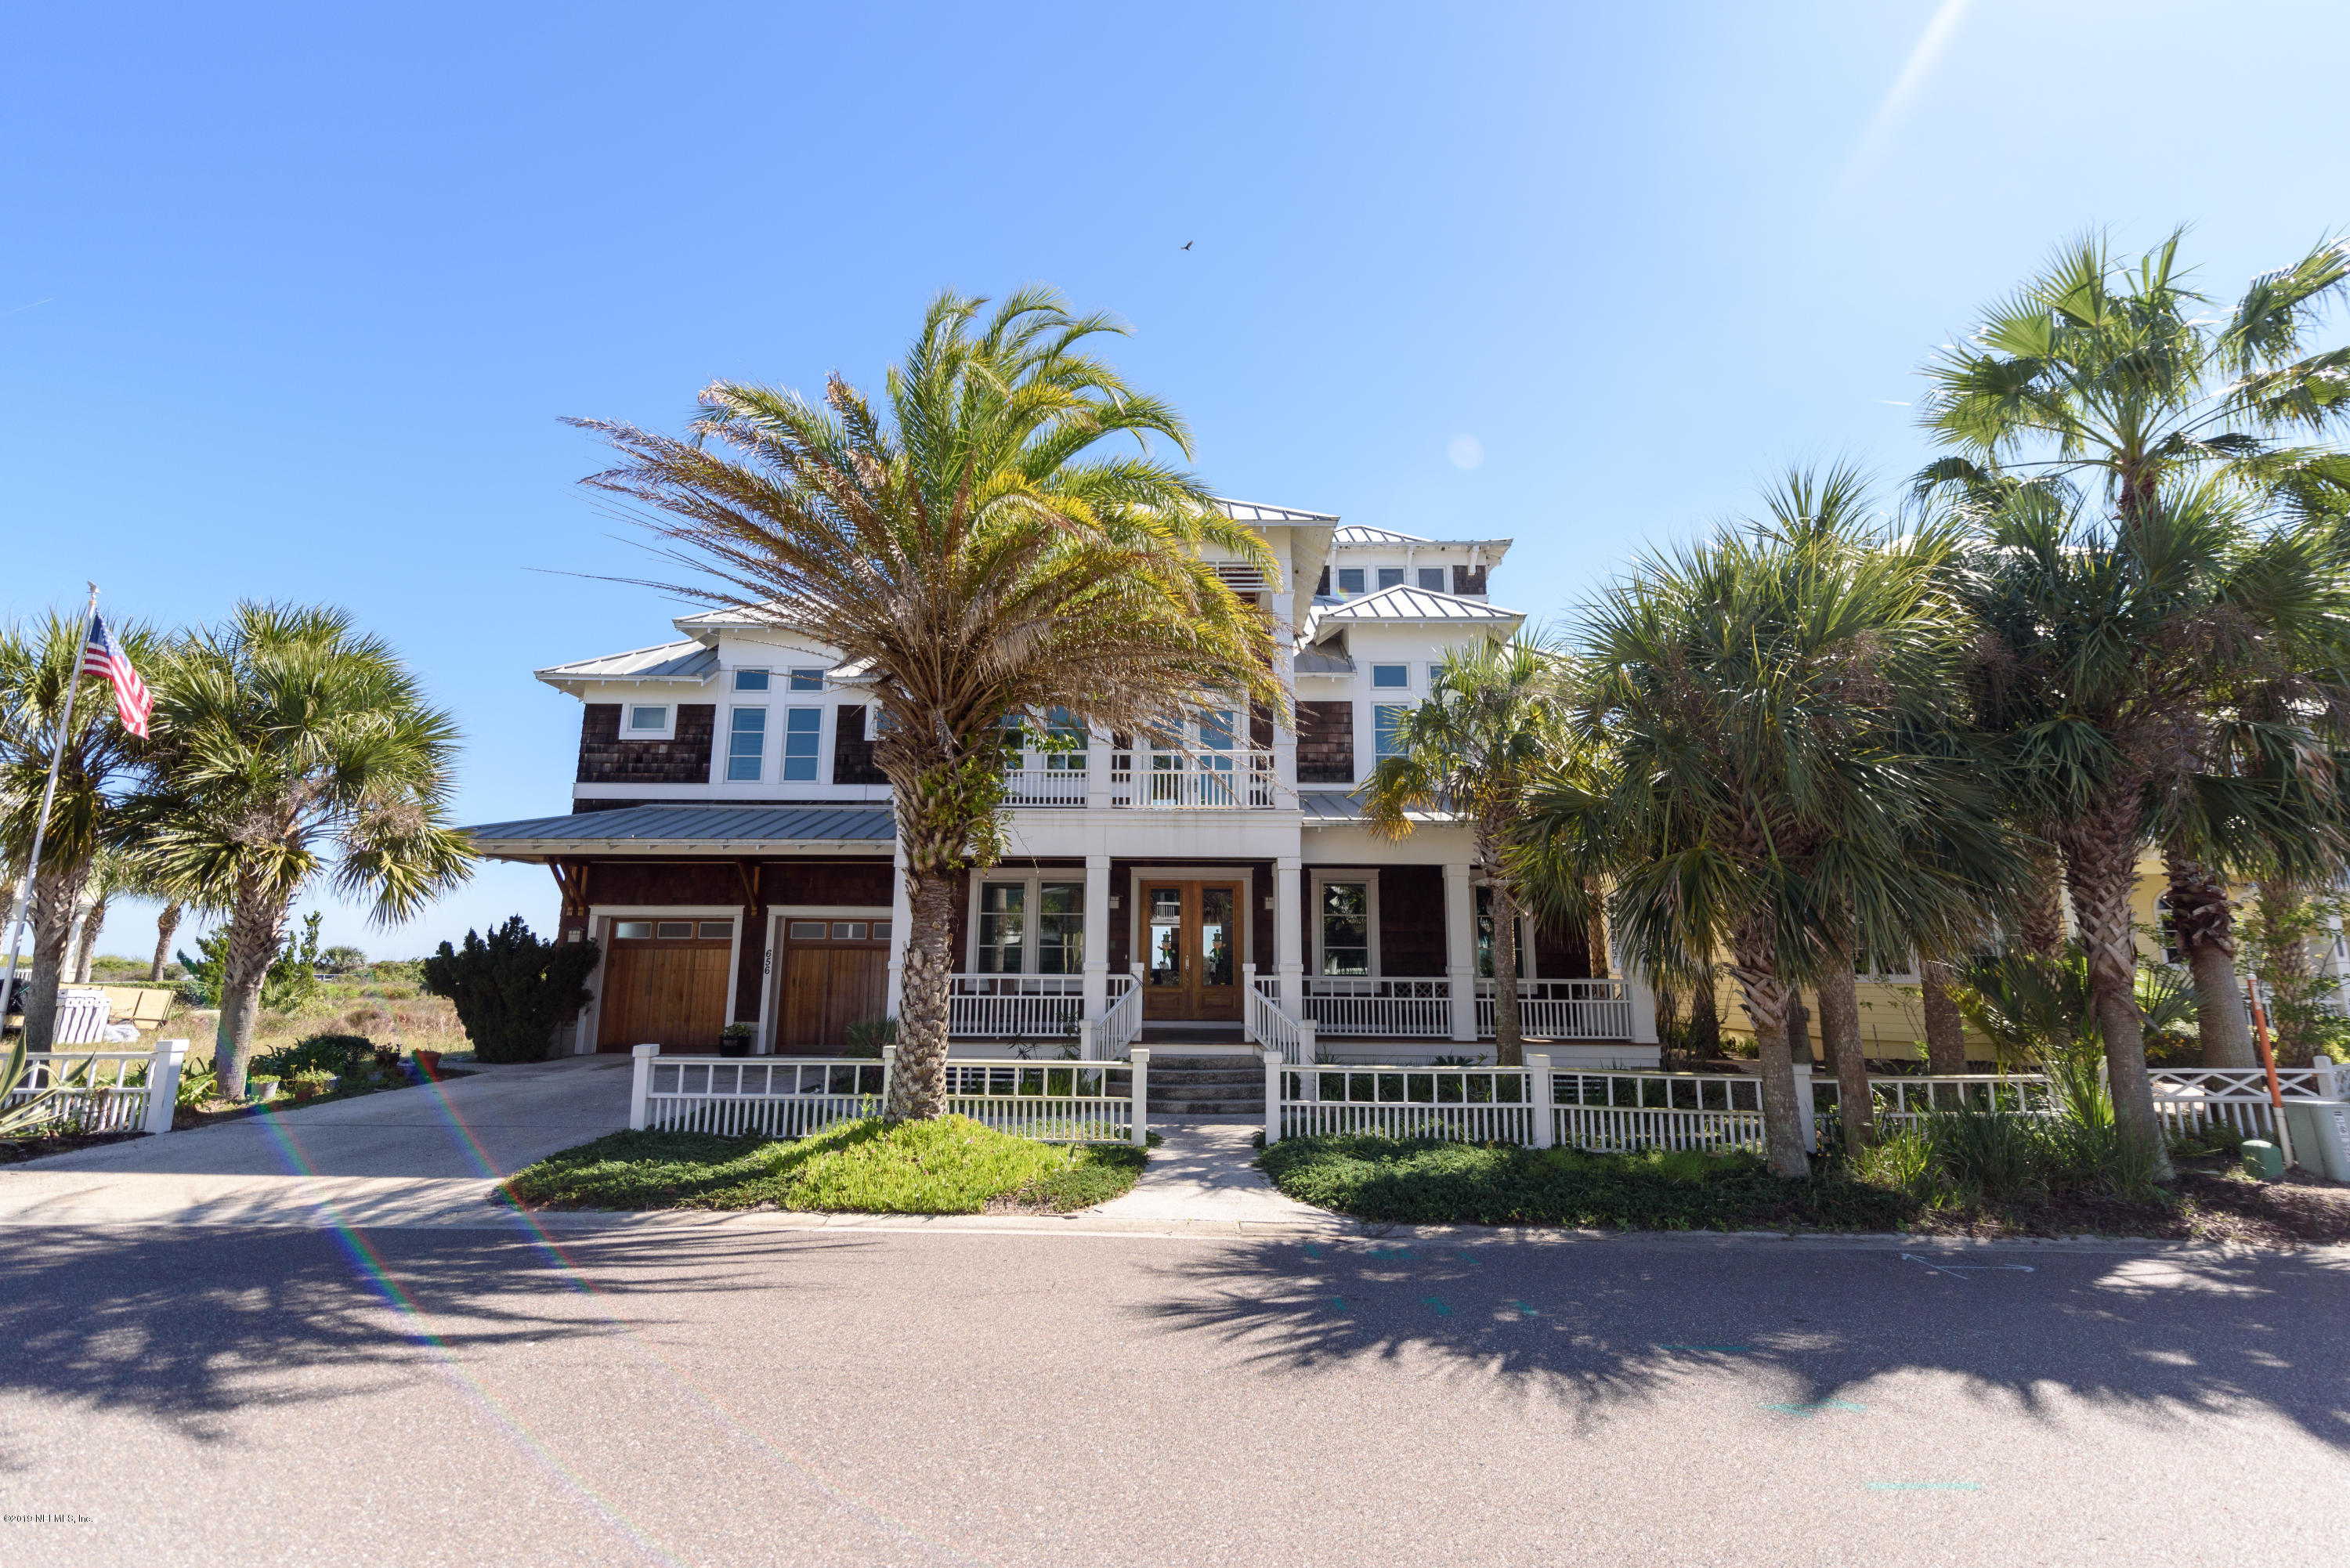 656 OCEAN PALM, ST AUGUSTINE, FLORIDA 32080, 5 Bedrooms Bedrooms, ,4 BathroomsBathrooms,Residential,For sale,OCEAN PALM,983408